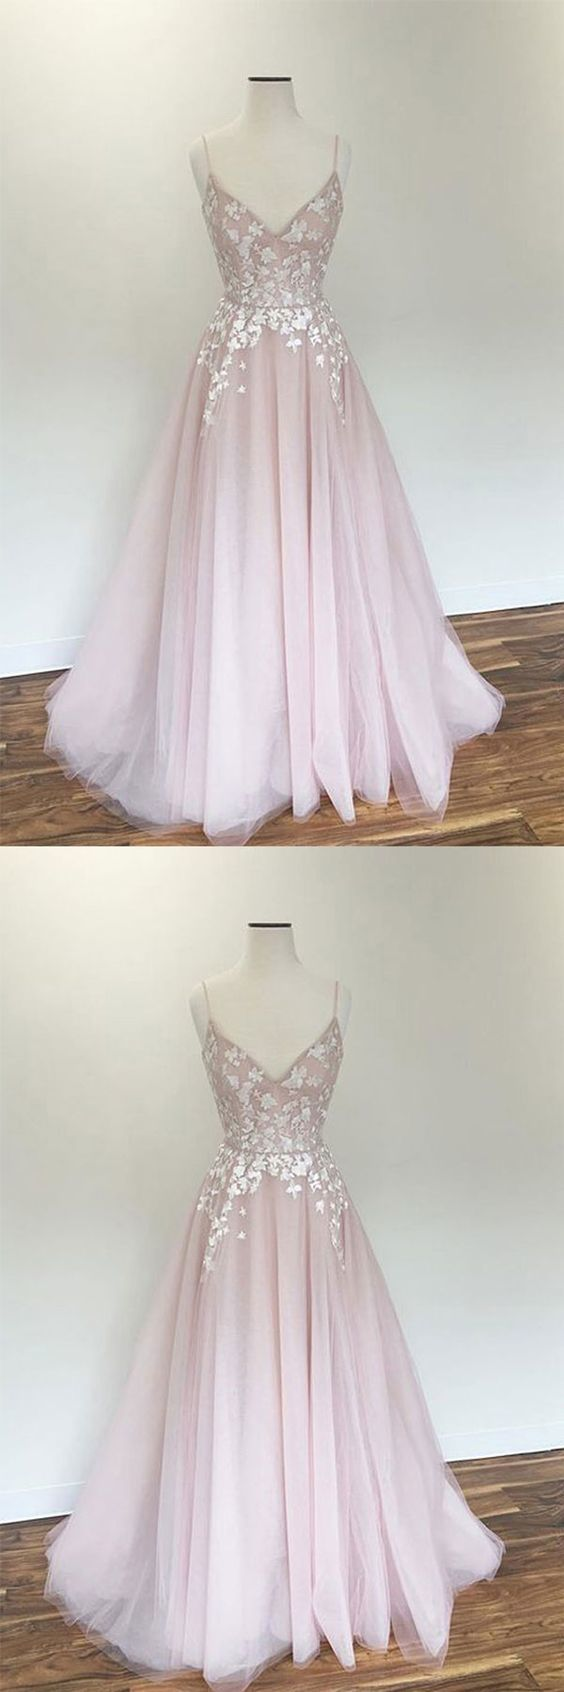 Light pink v neck tulle applique long prom dress pink evening dress